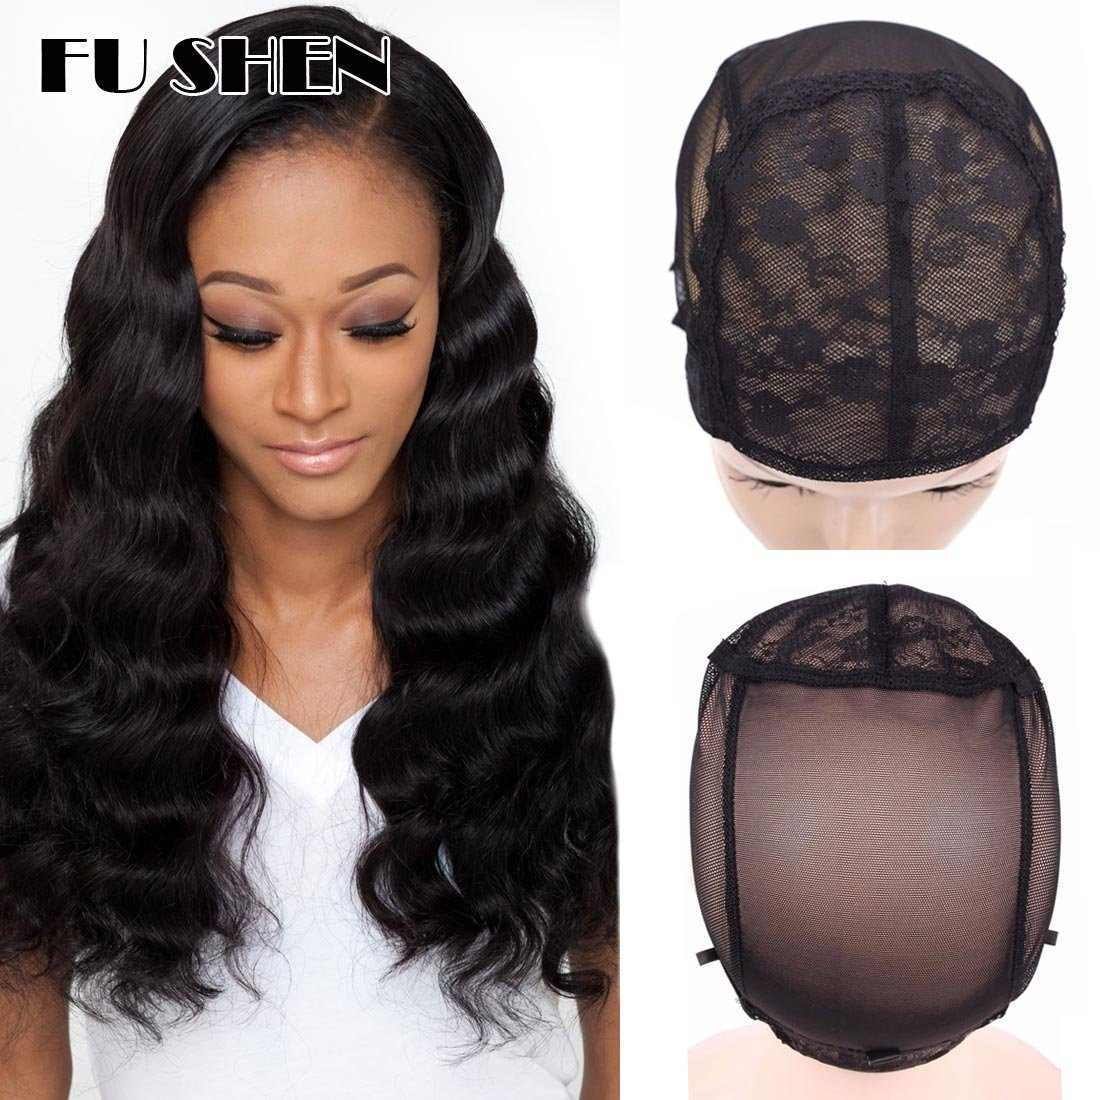 Double Swiss Lace Wig Cap To Make Wig With Adjustable Straps And Combs, Black Mesh Hairnets Wig Caps Size Large For 22Inch Big Head 2 Pcs/Pack by FU SHEN